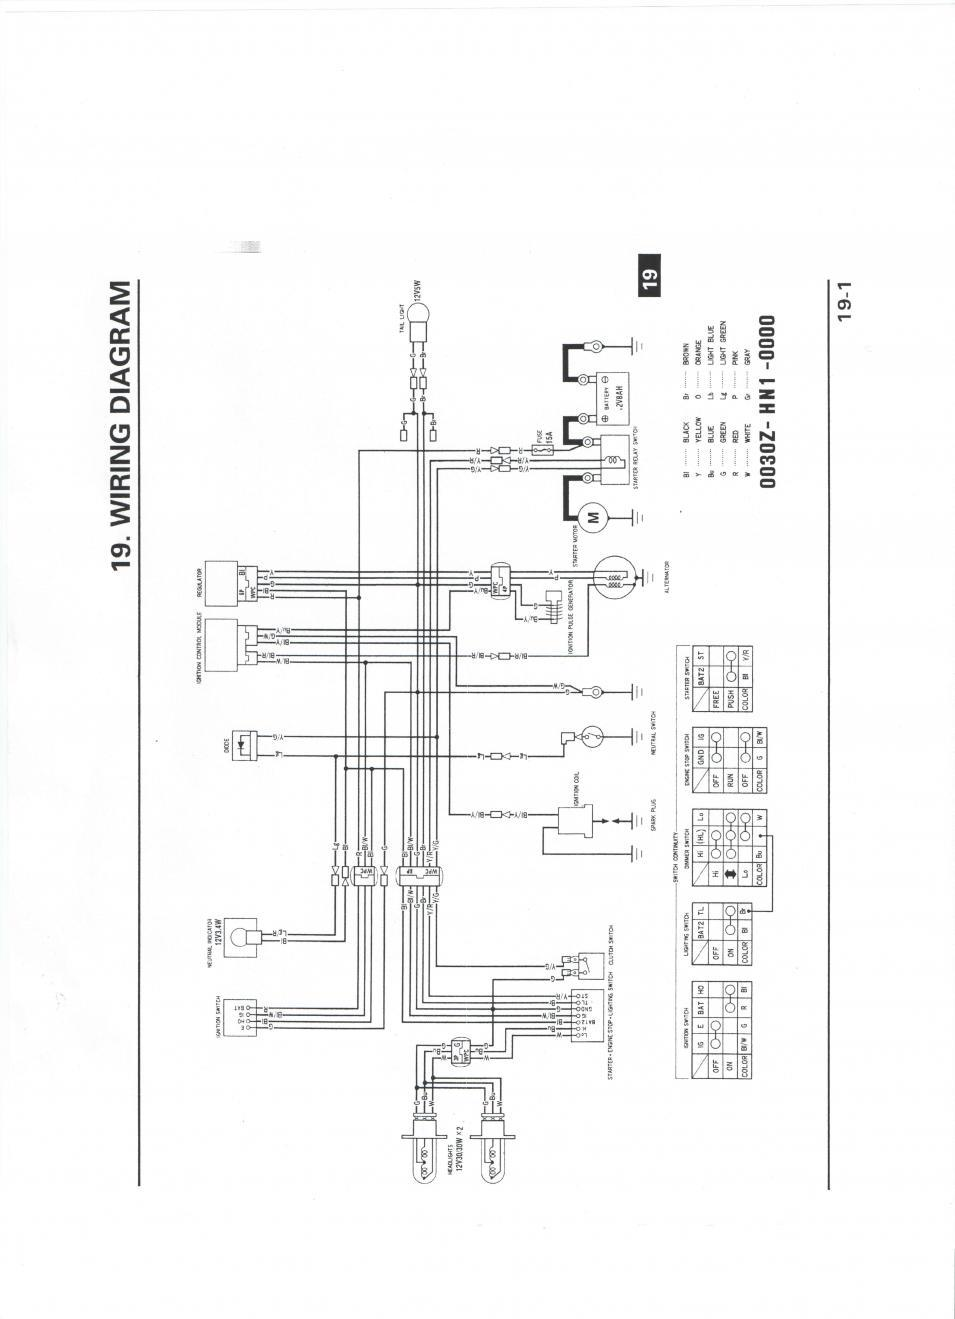 2004 Honda 400ex Wiring - 2013 F150 Stereo Wiring Diagram for Wiring  Diagram Schematics | Trx 400ex Wiring Diagram |  | Wiring Diagram Schematics